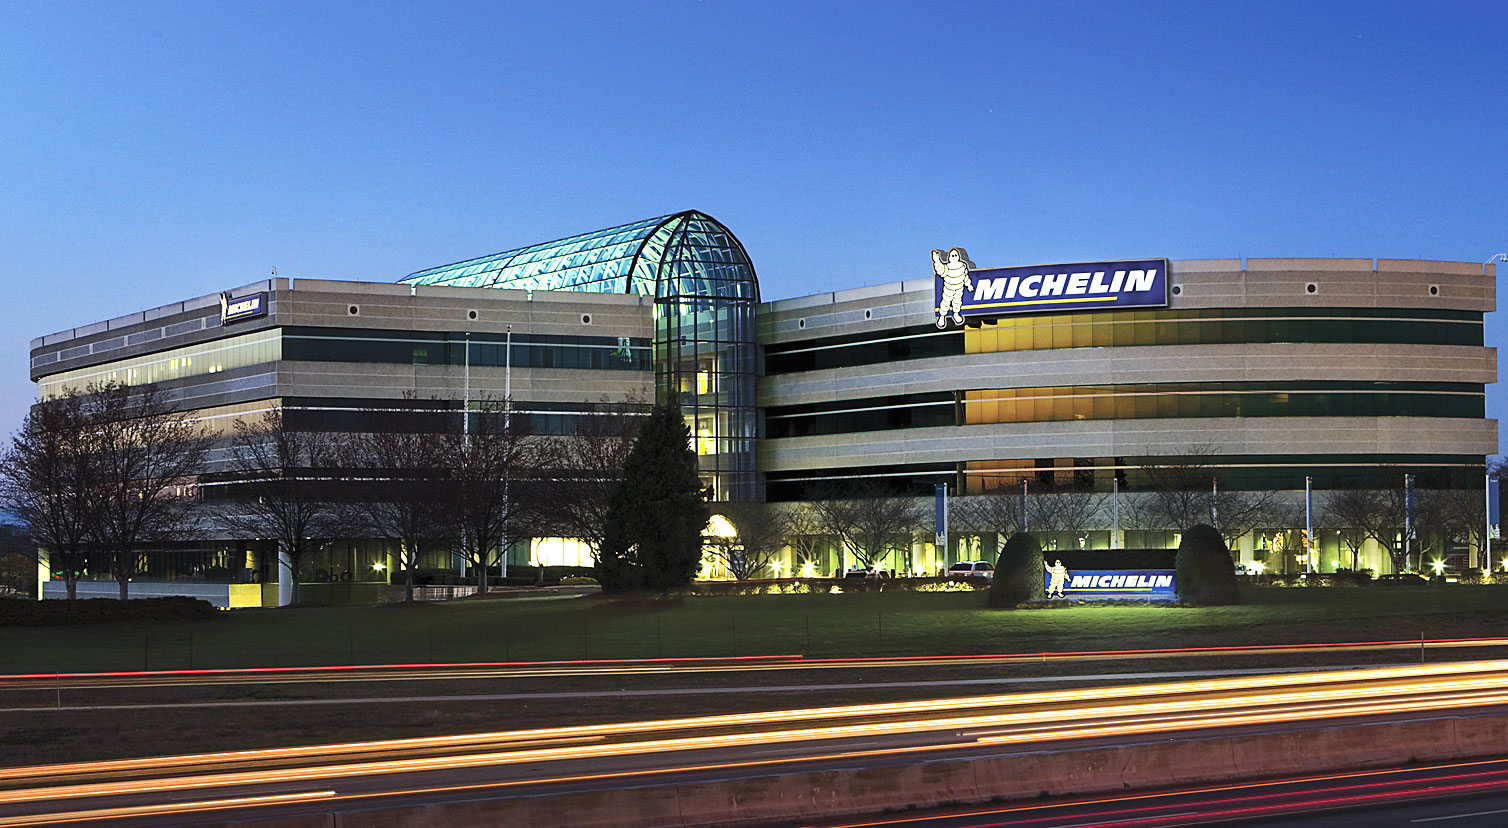 Michelin_HQ.jpg